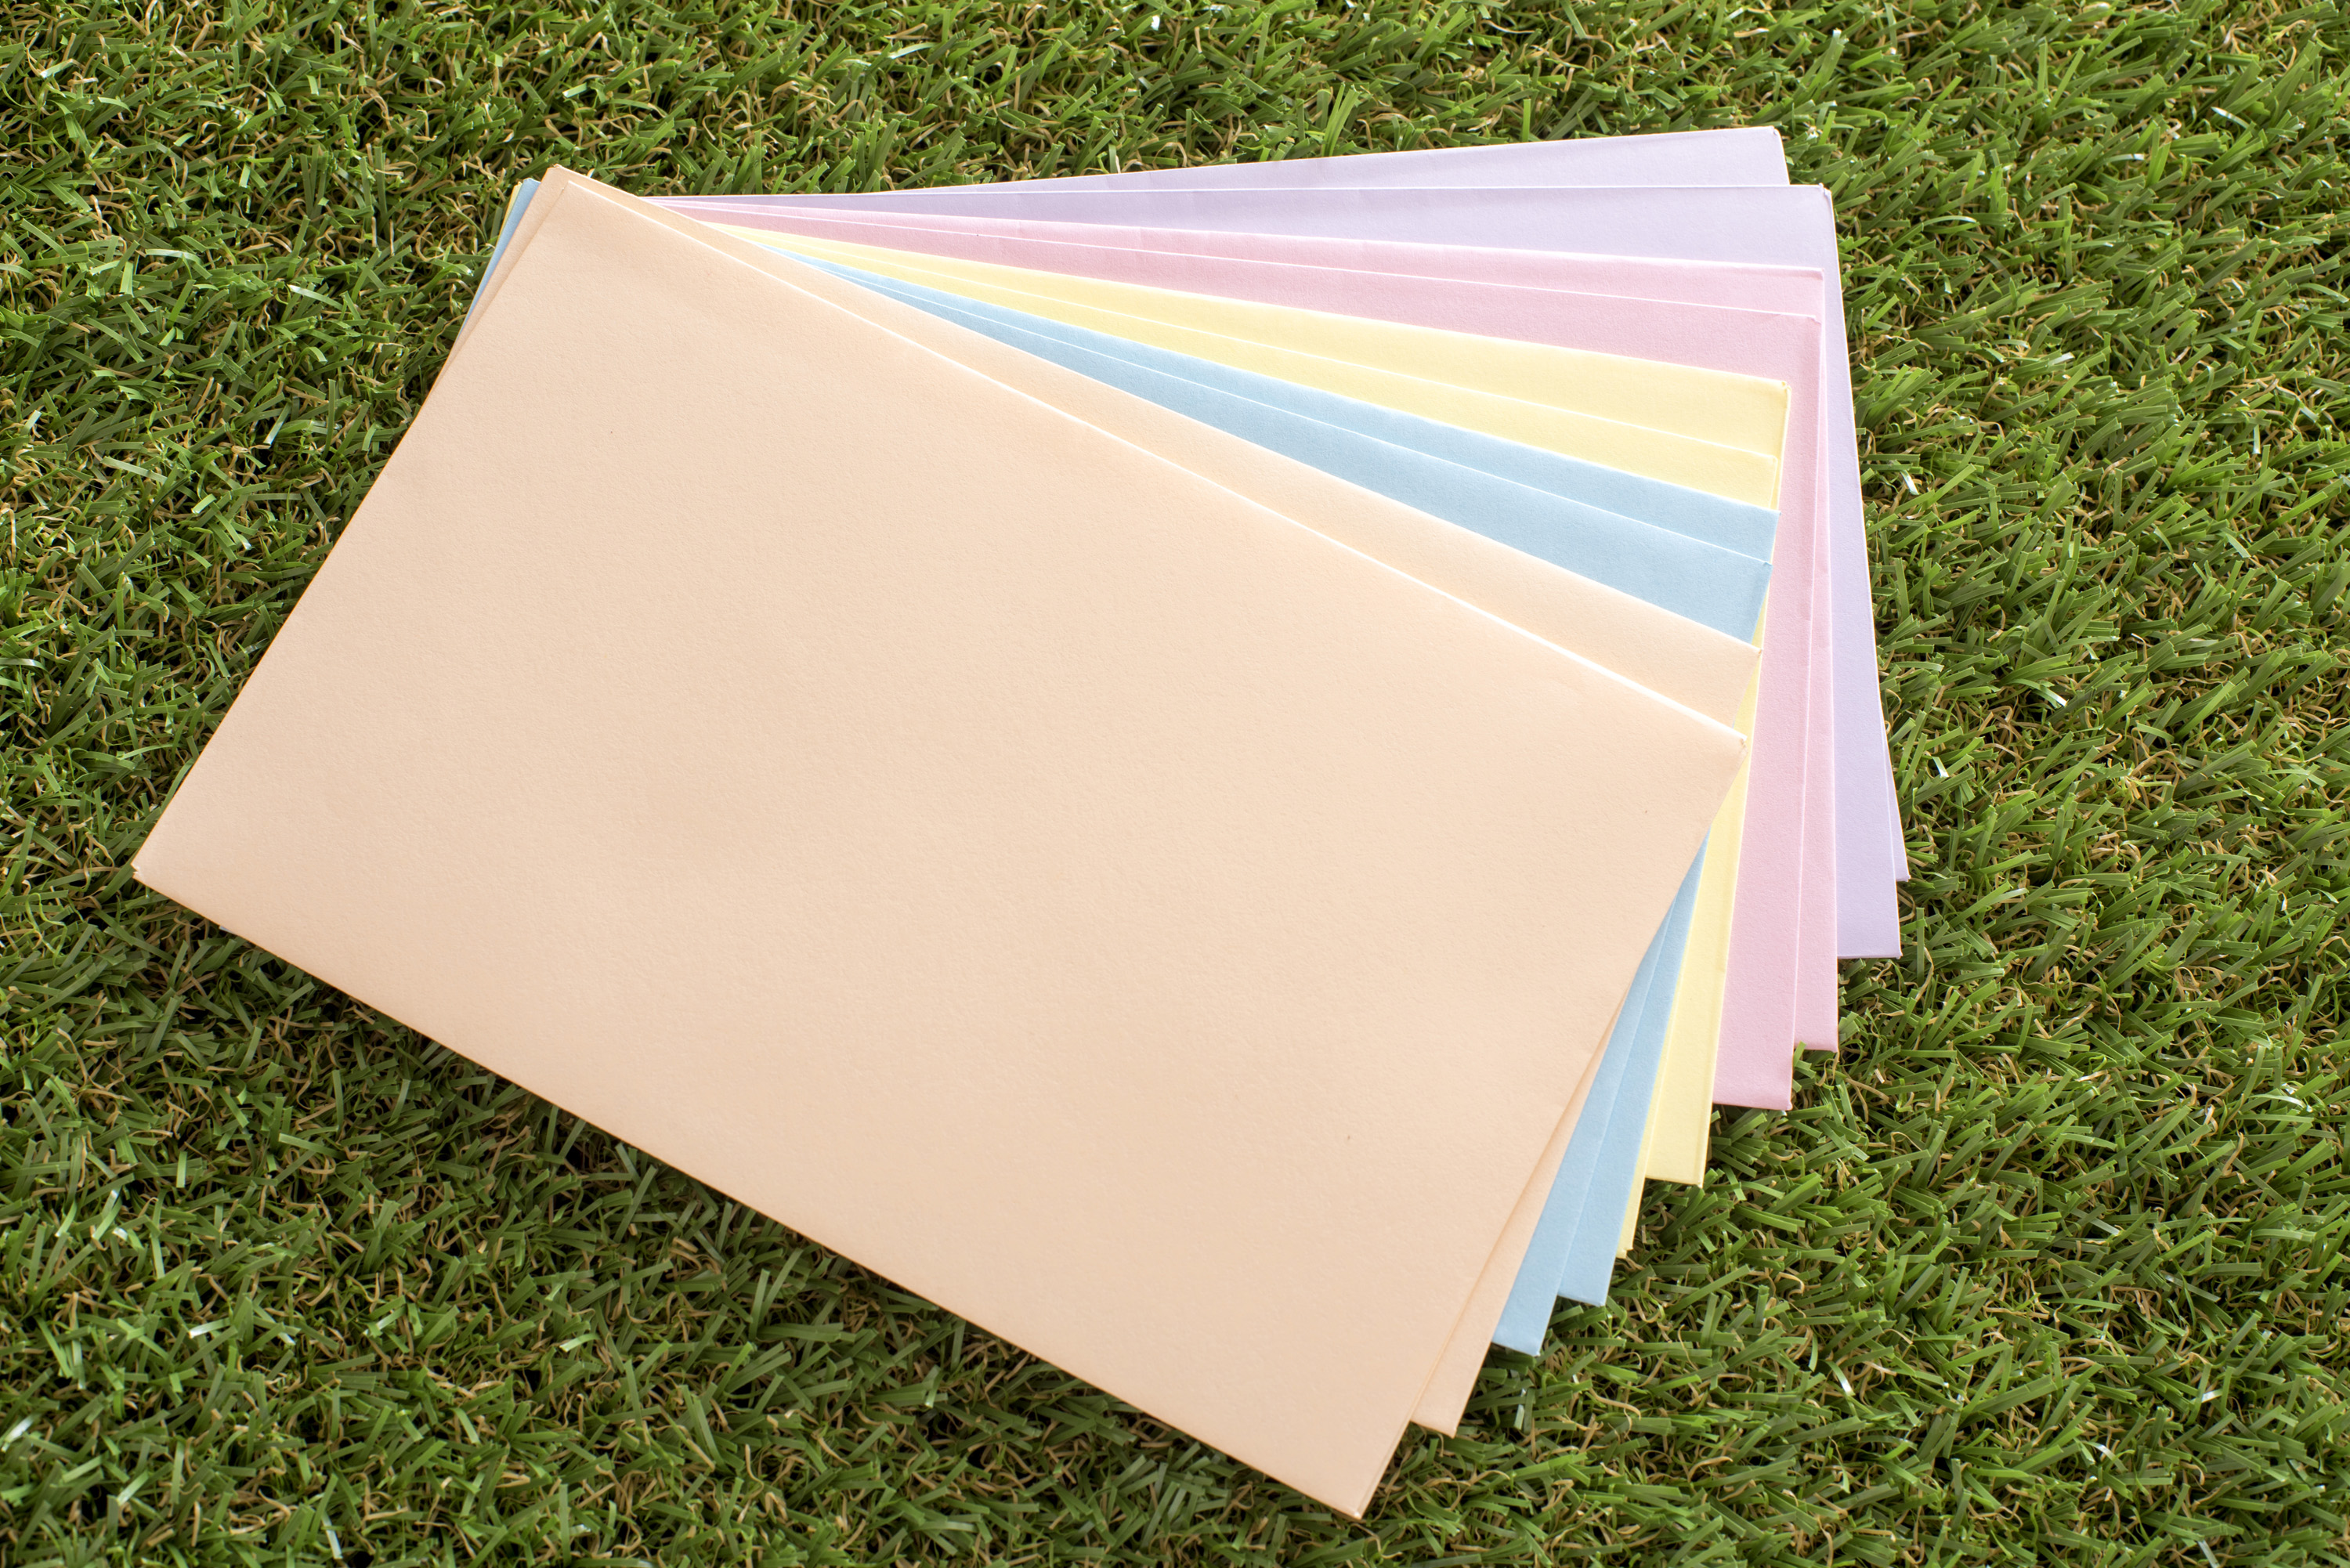 messages_for_easter.jpg - Stack of colorful unused envelopes for Easter messages lying fanned out on fresh green grass in a concept of spring and holiday celebration greetings